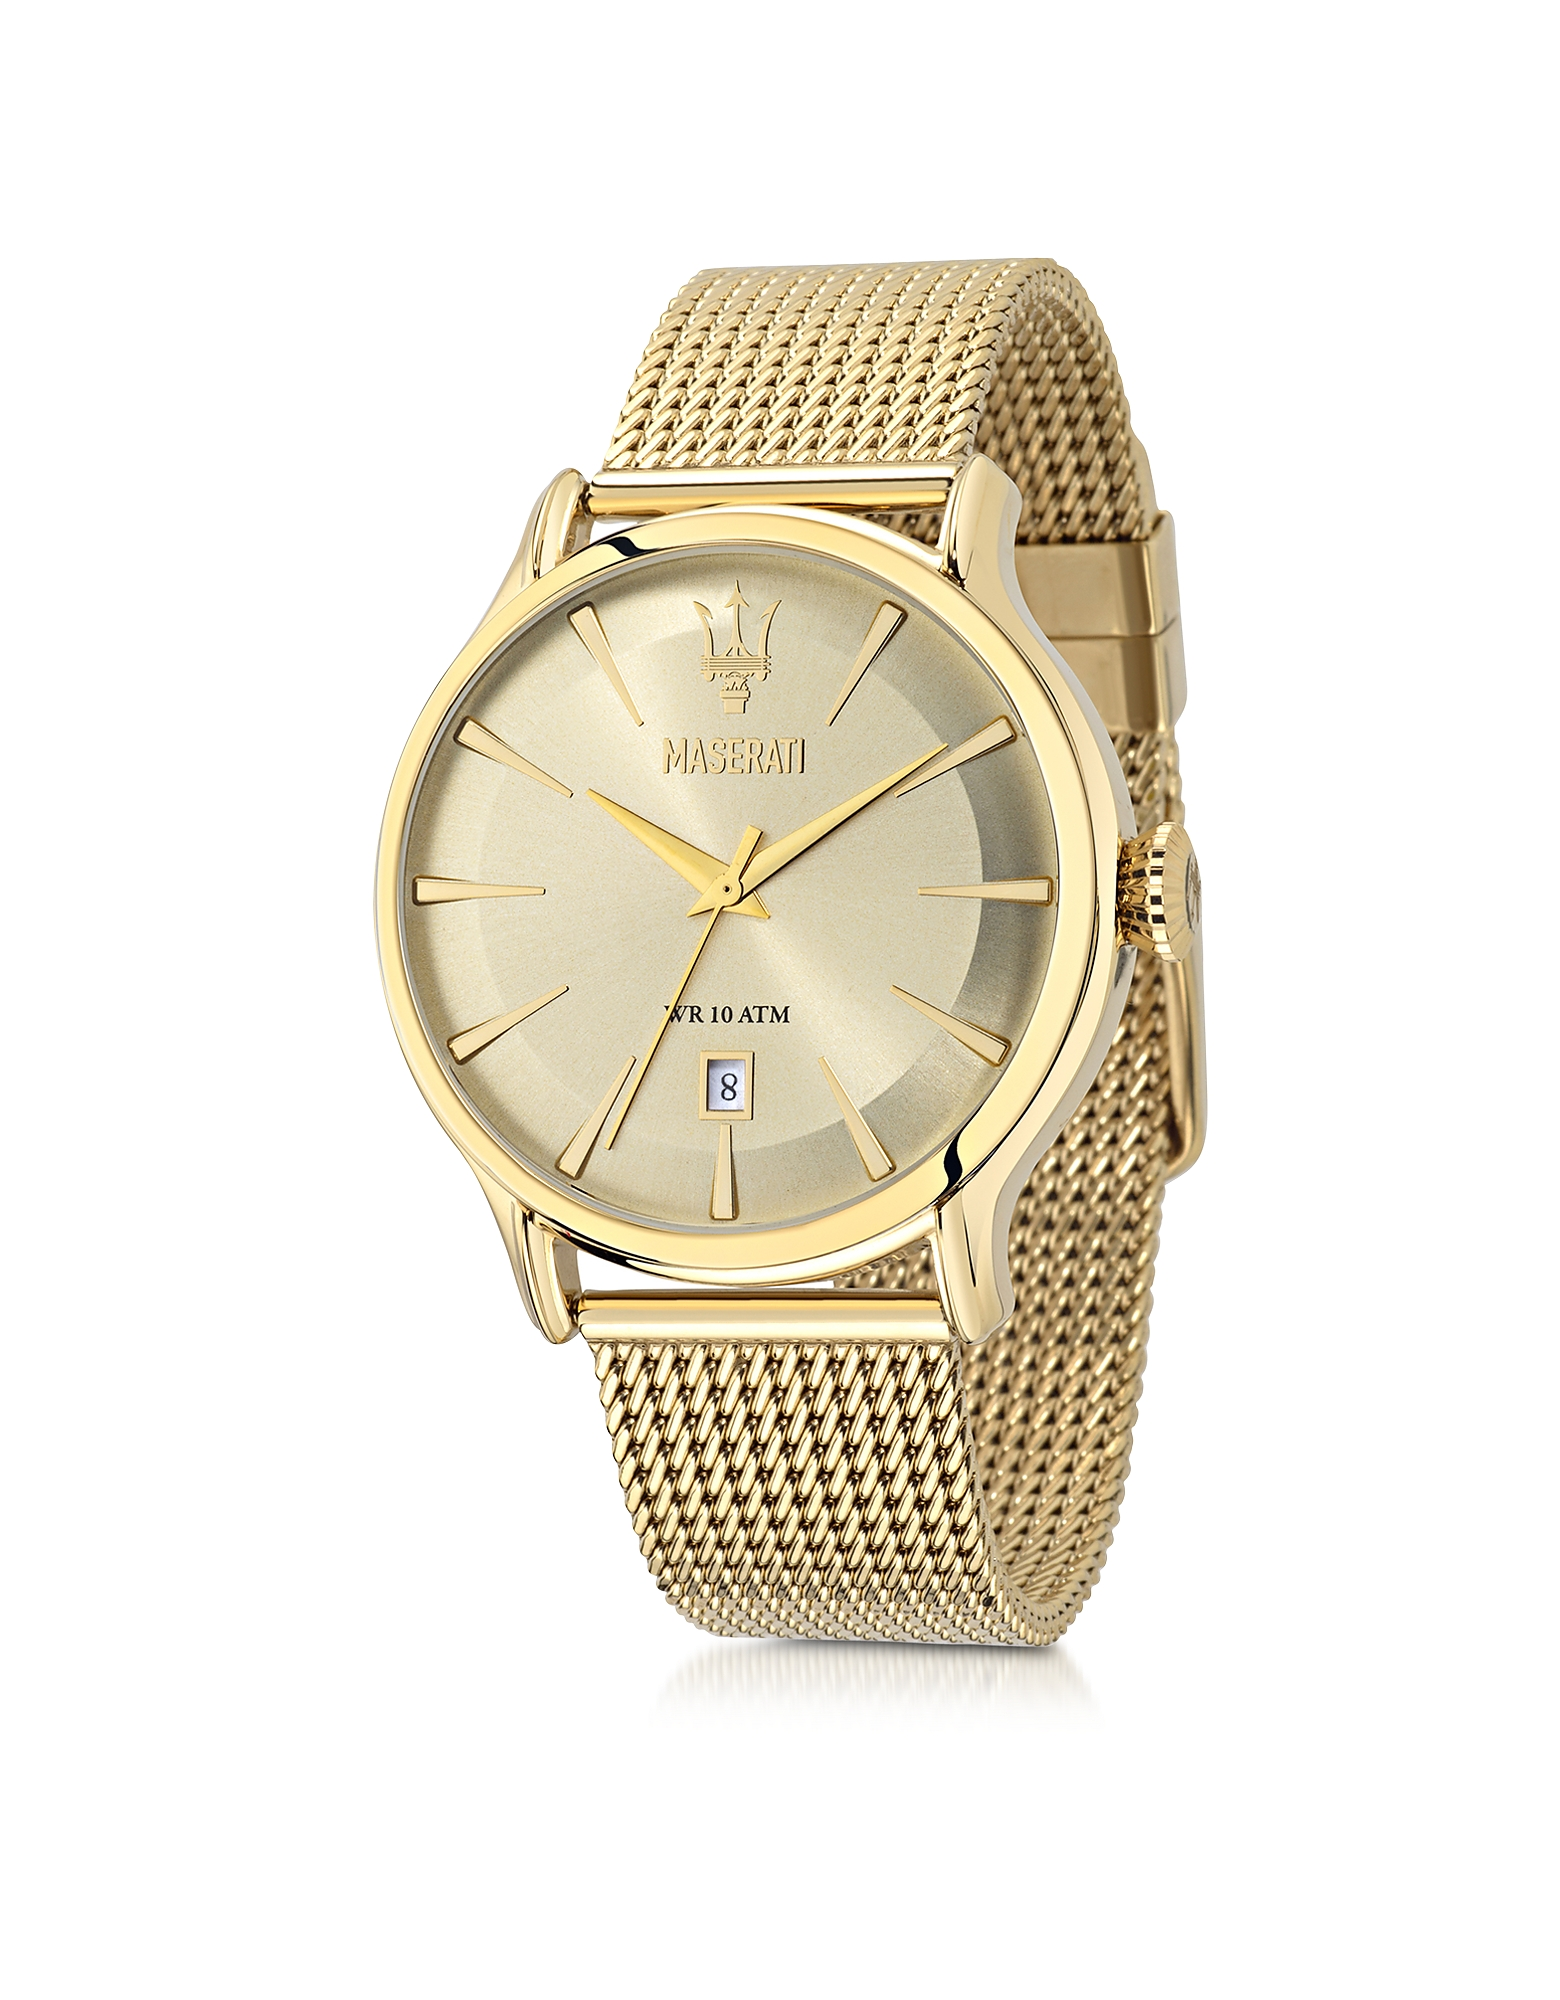 Maserati Men's Watches, Epoca Gold Tone Stainless Steel Men's Watch